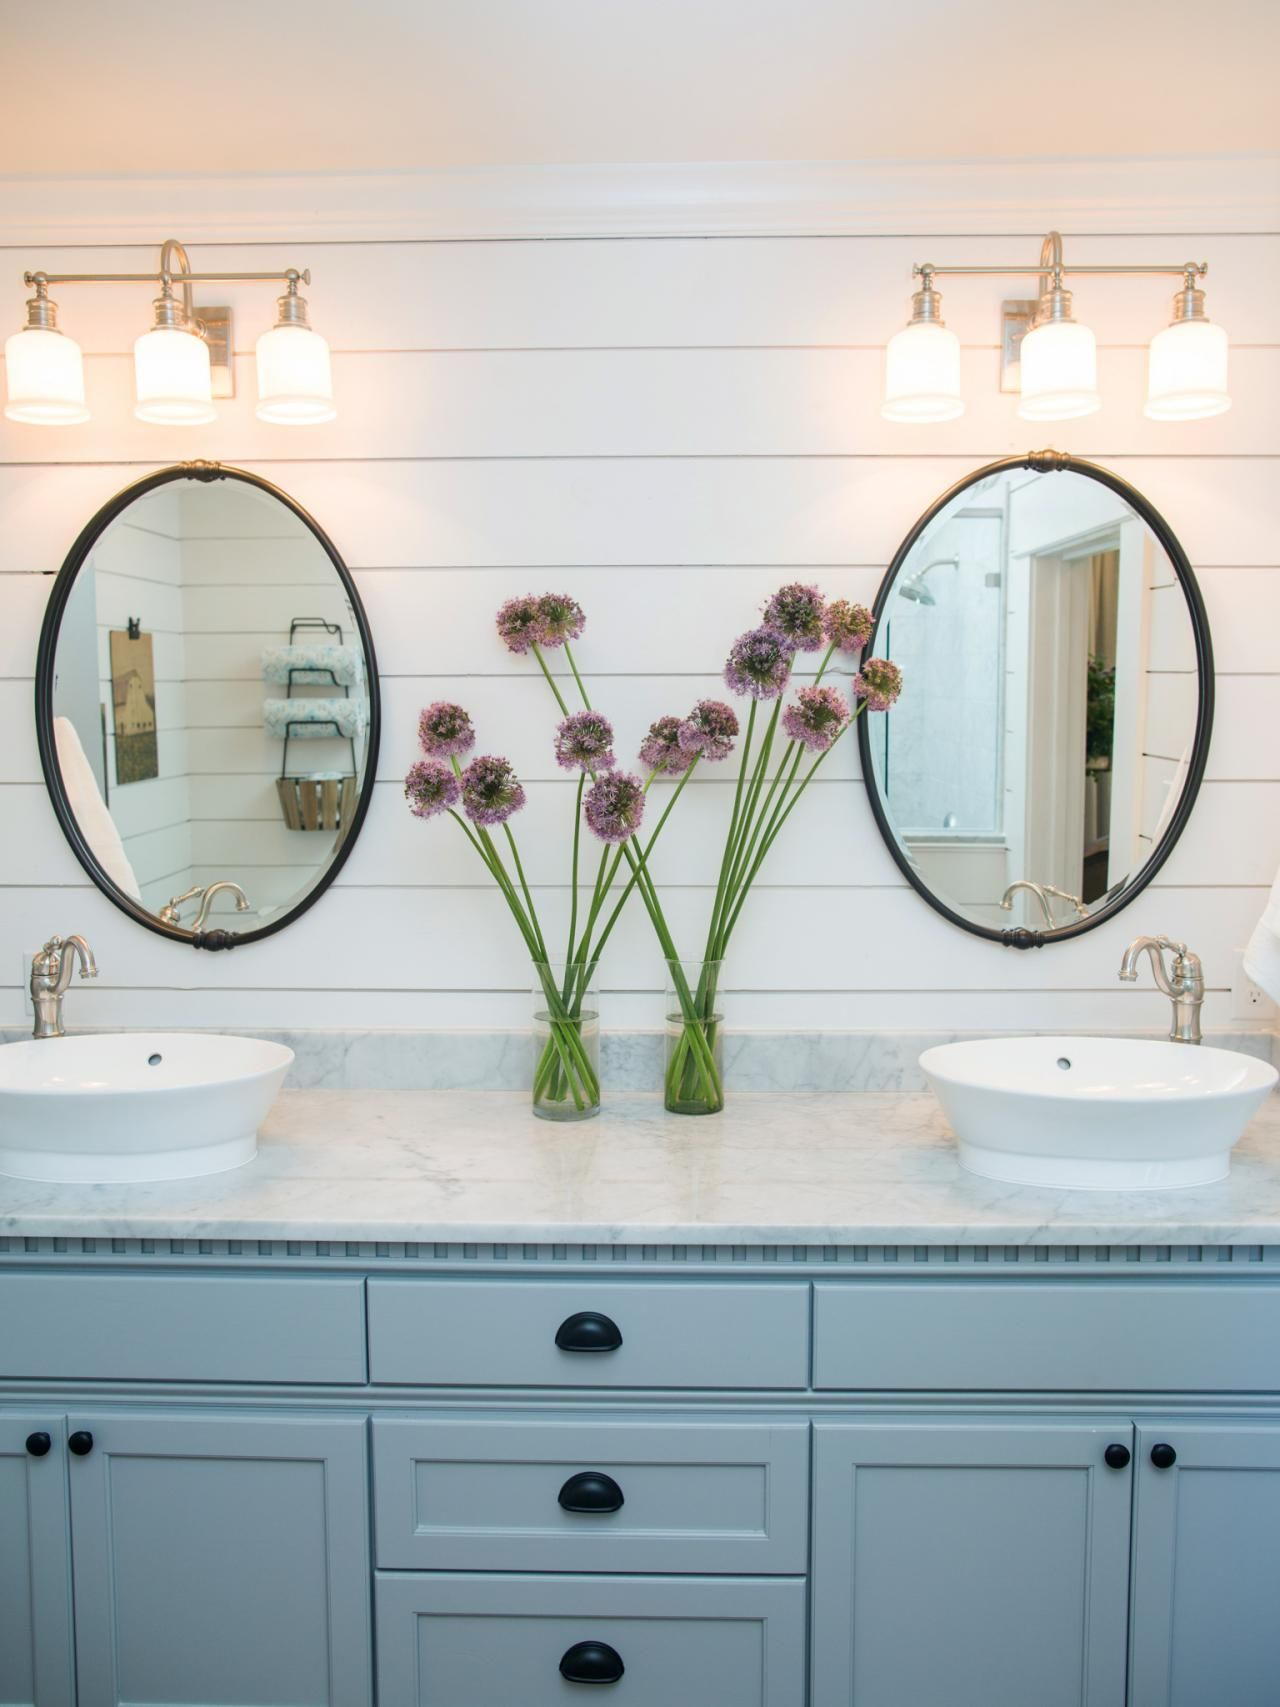 Merveilleux 5 Things Every Fixer Upper Inspired Farmhouse Bathroom Needs | Decorating  And Design Blog | HGTV